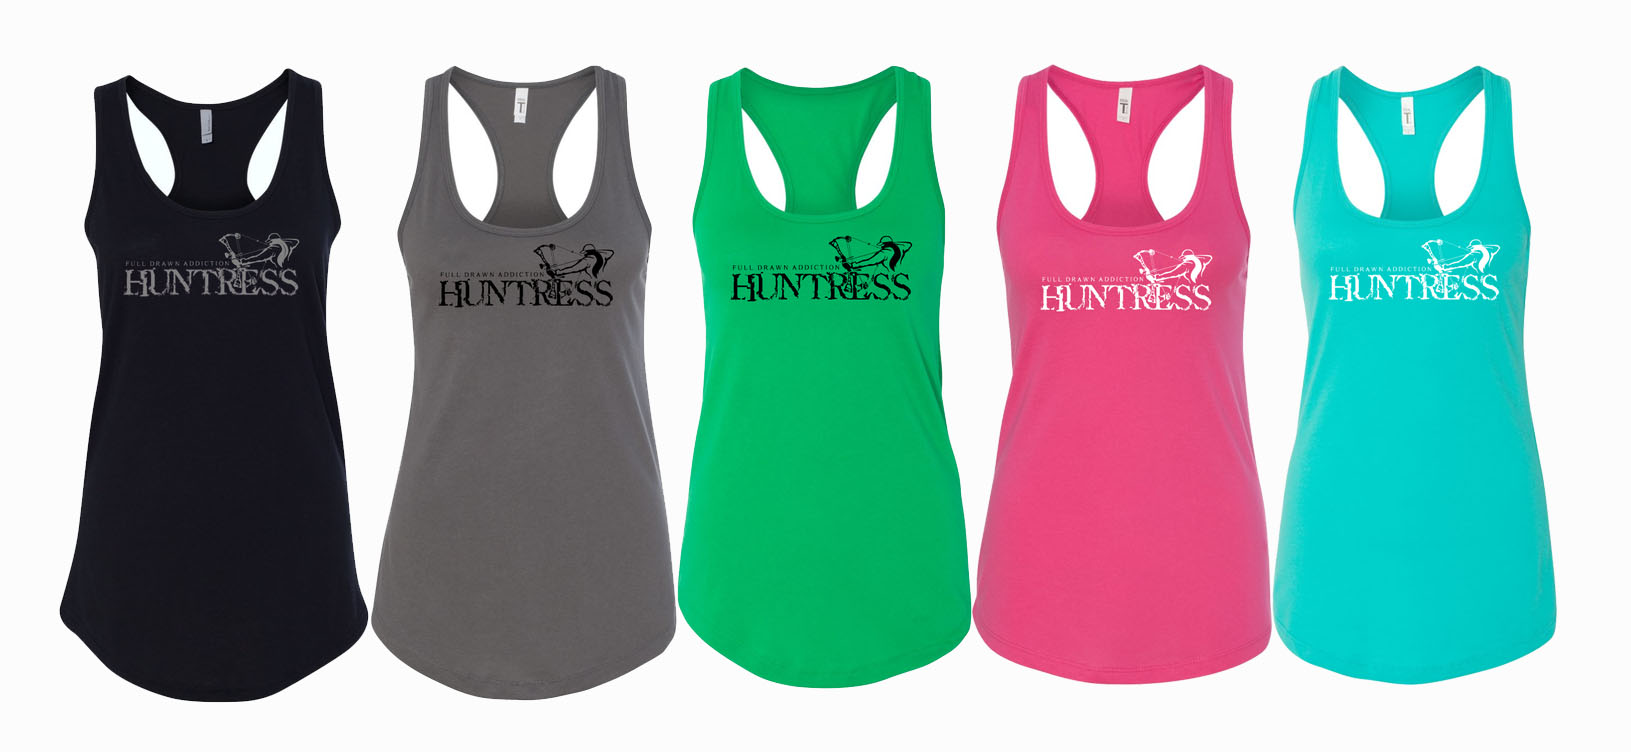 FDA Huntress Racer Back Tank